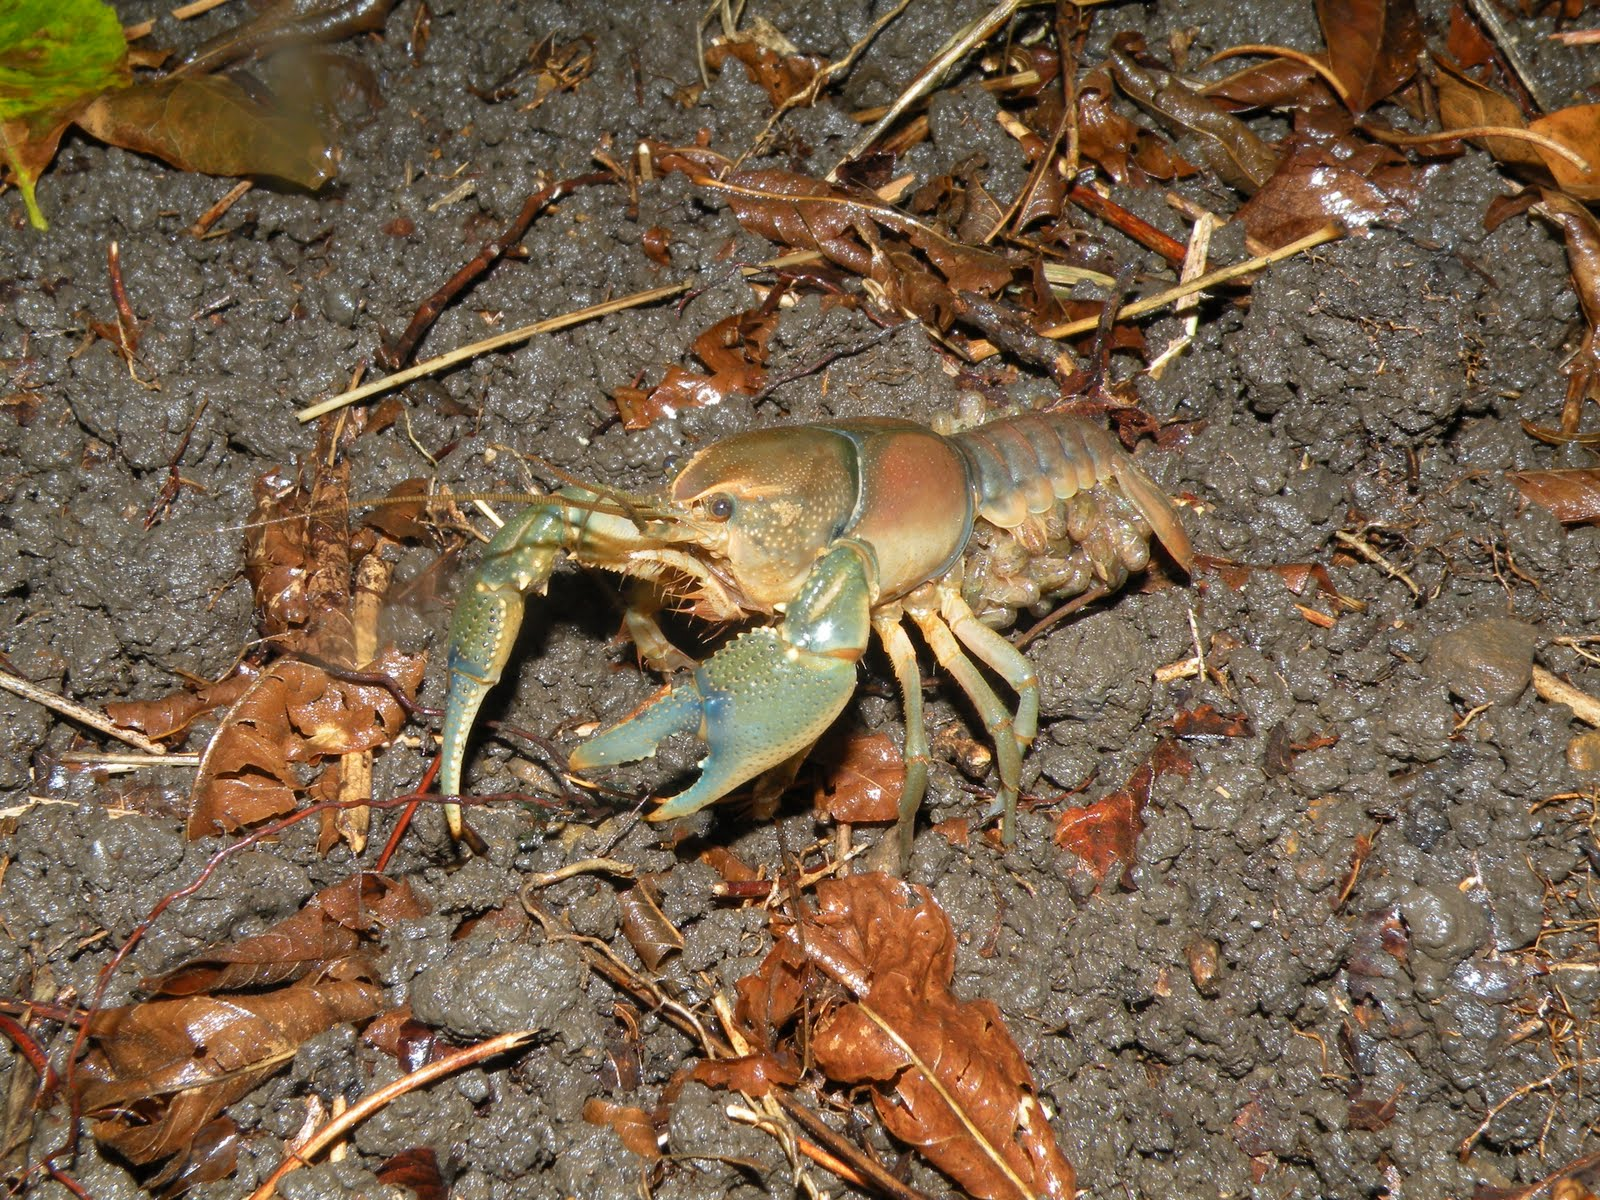 New crayfish discovered in West Virginia. The common name ...